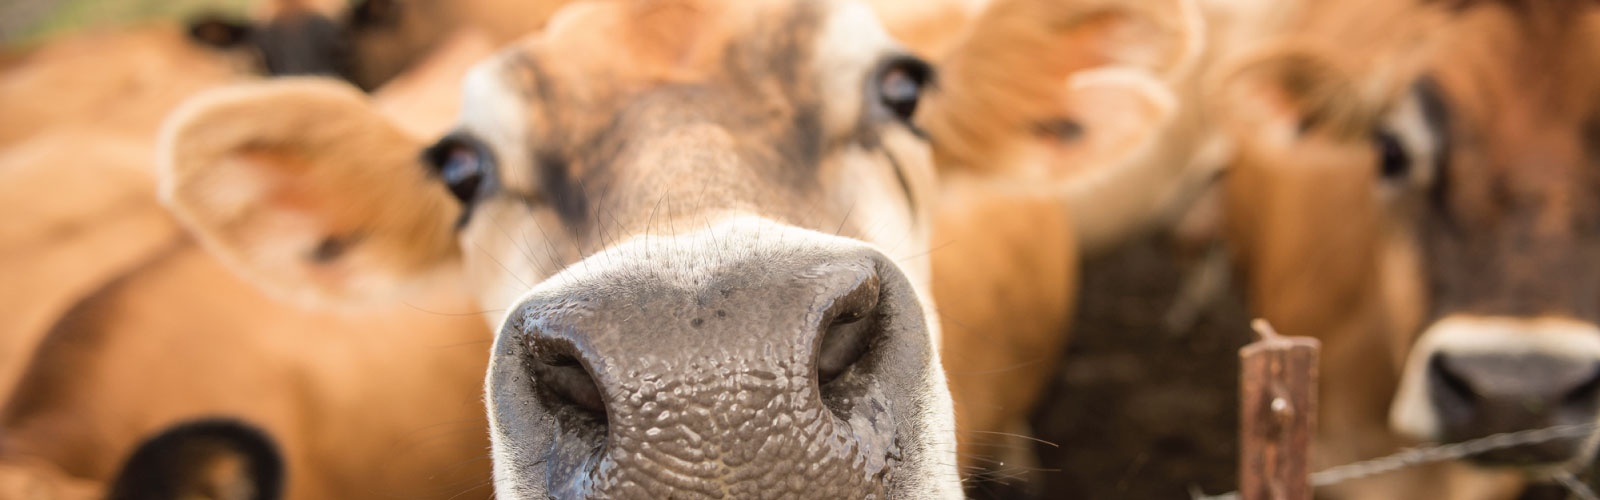 A close up photo of a cow overlaid with the Tillamook logo